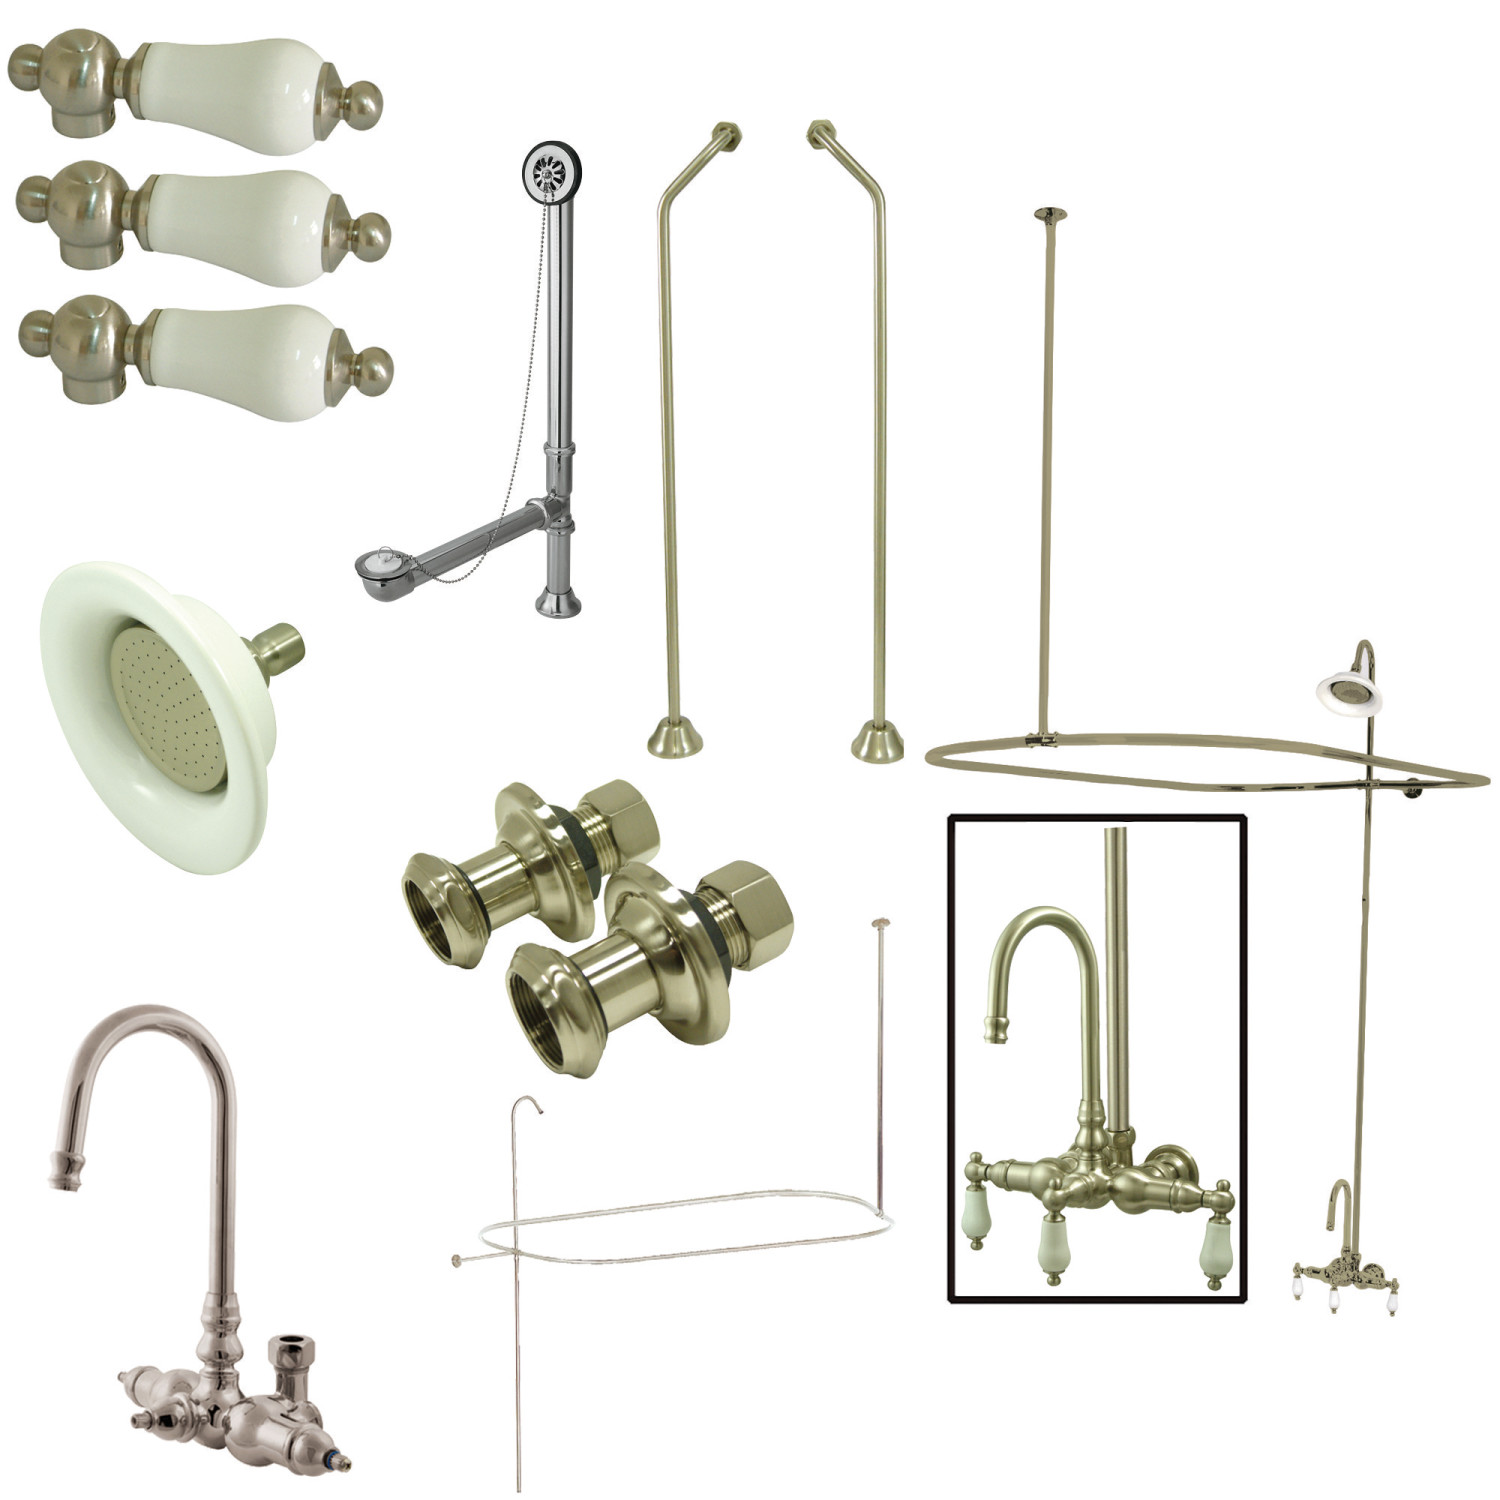 Elements Of Design Edk4188pl Gooseneck Clawfoot Tub Faucet Package 8 Inch Rough In Brushed Nickel